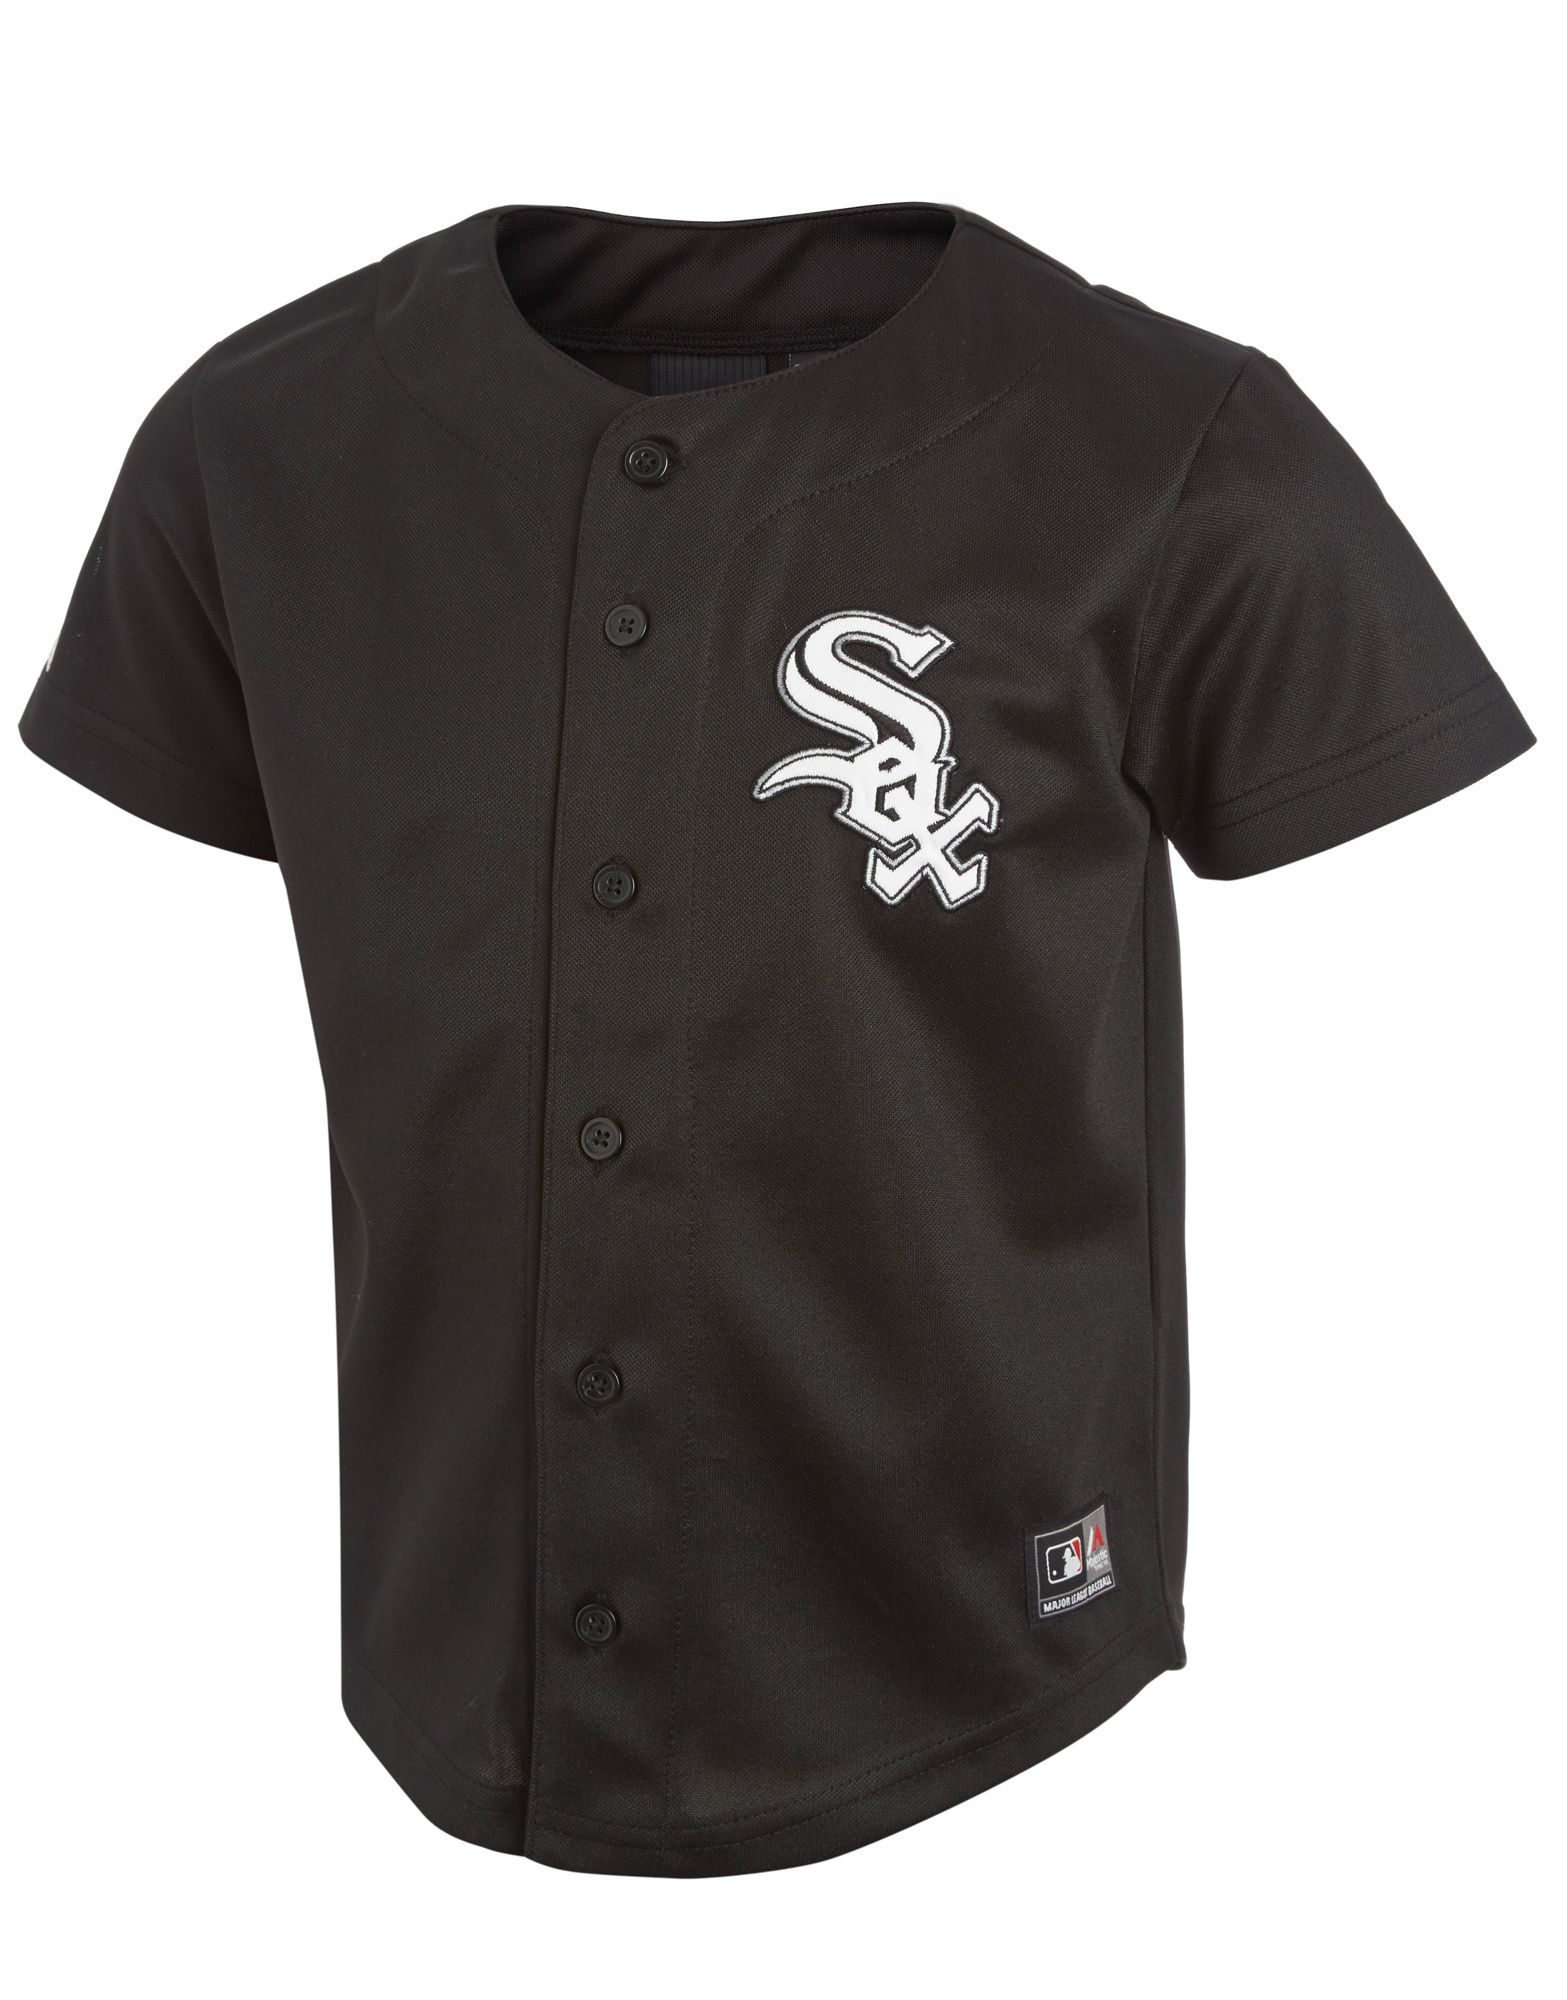 Majestic Athletic MLB Chicago White Sox Jersey Childrens